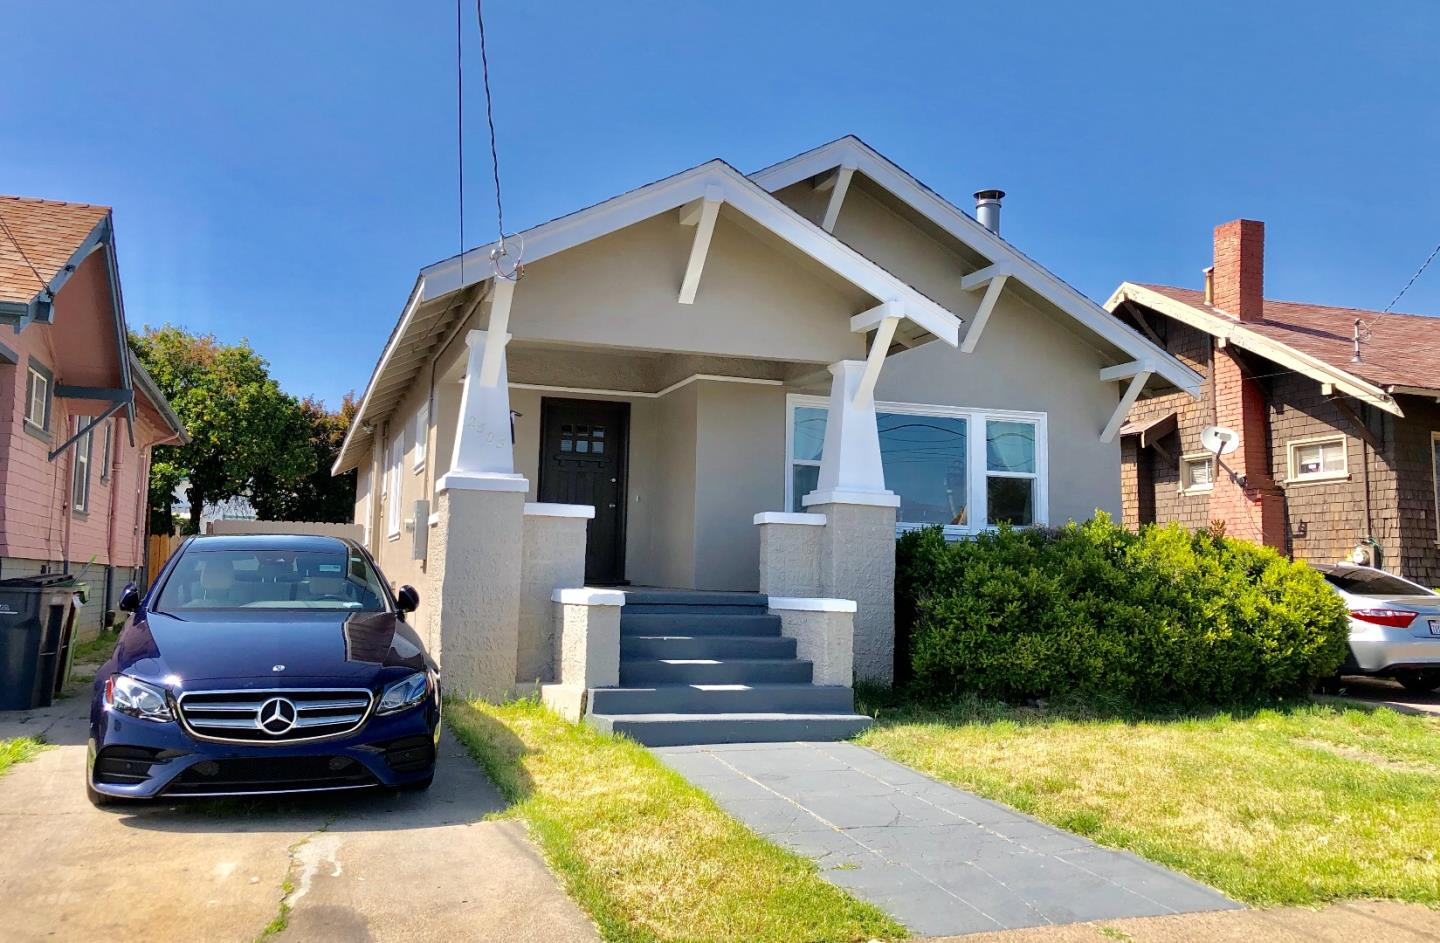 Image for 2505 66Th Avenue, <br>Oakland 94605